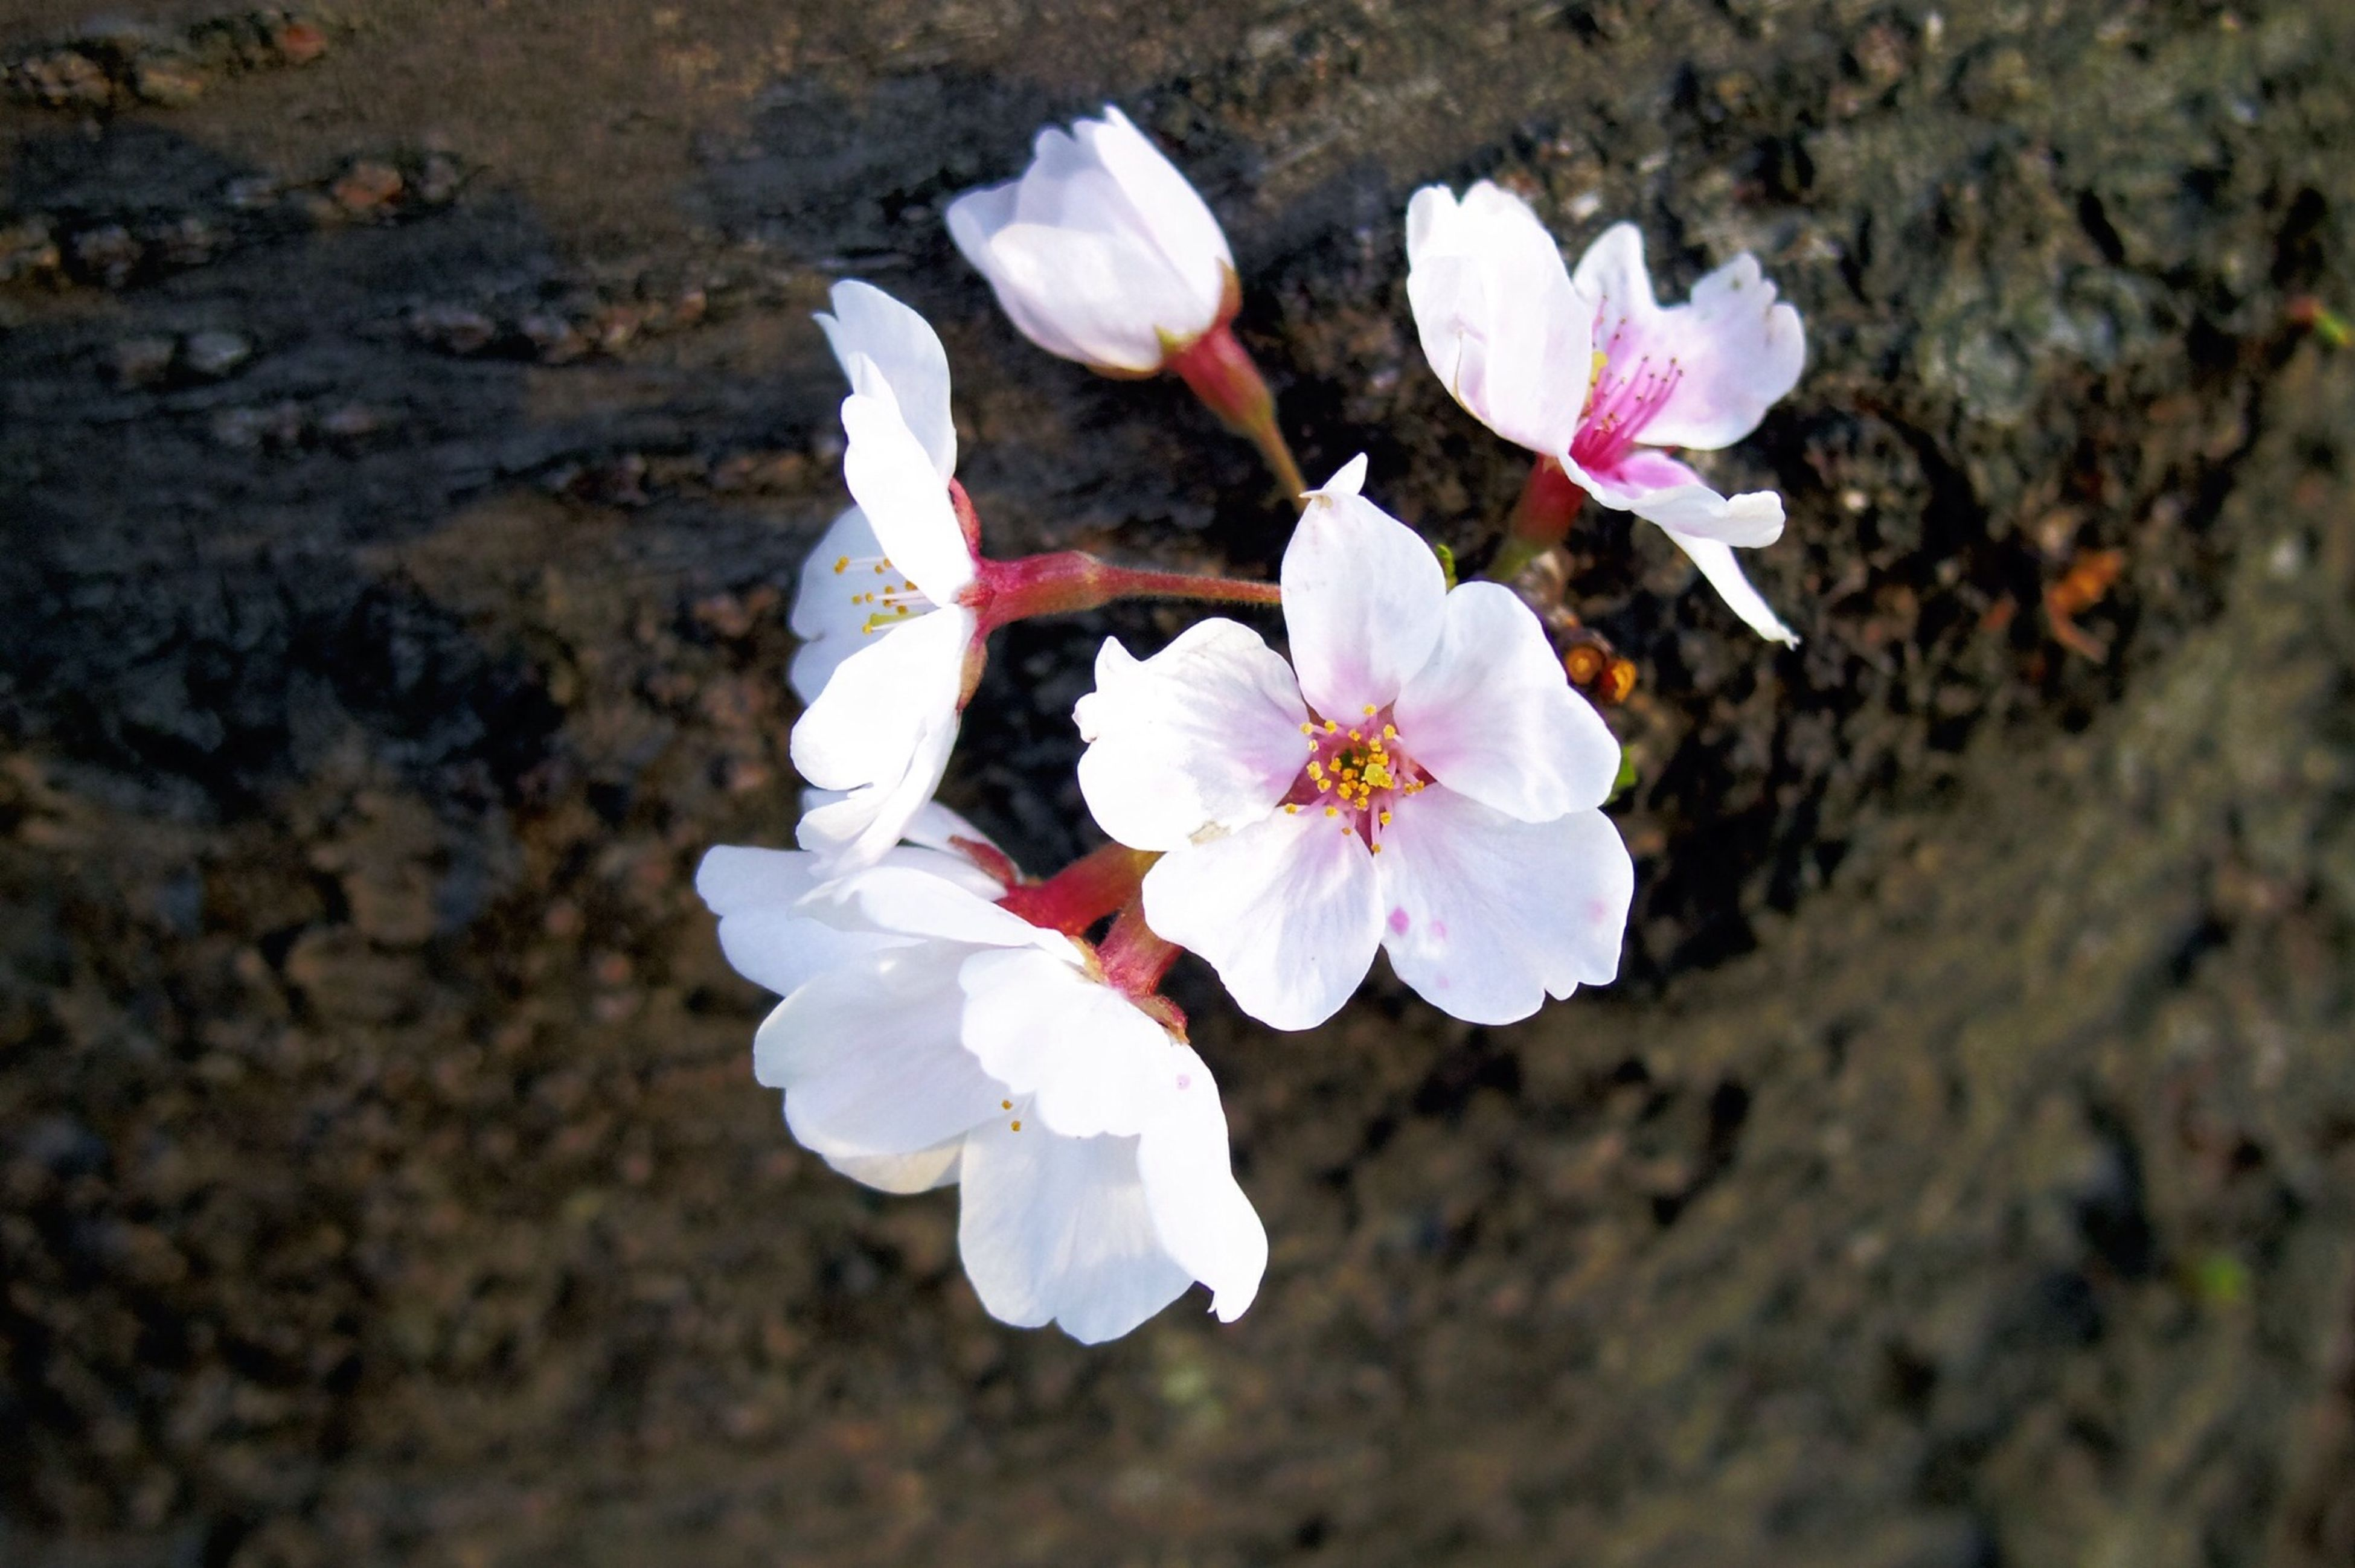 flower, petal, fragility, flower head, freshness, blooming, beauty in nature, high angle view, nature, growth, close-up, in bloom, pollen, pink color, white color, blossom, stamen, day, focus on foreground, no people